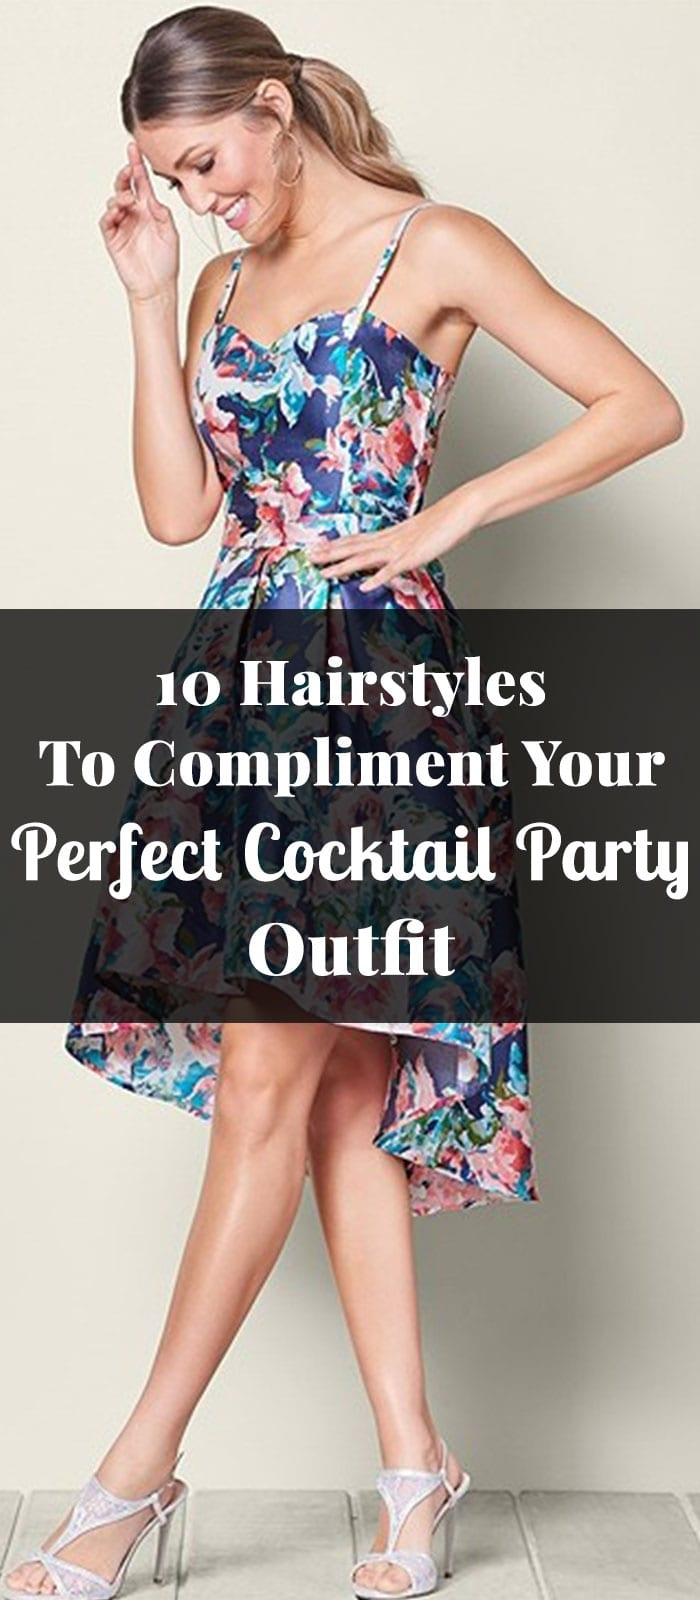 10 Hairstyles To Compliment Your Perfect Cocktail Party Outfit